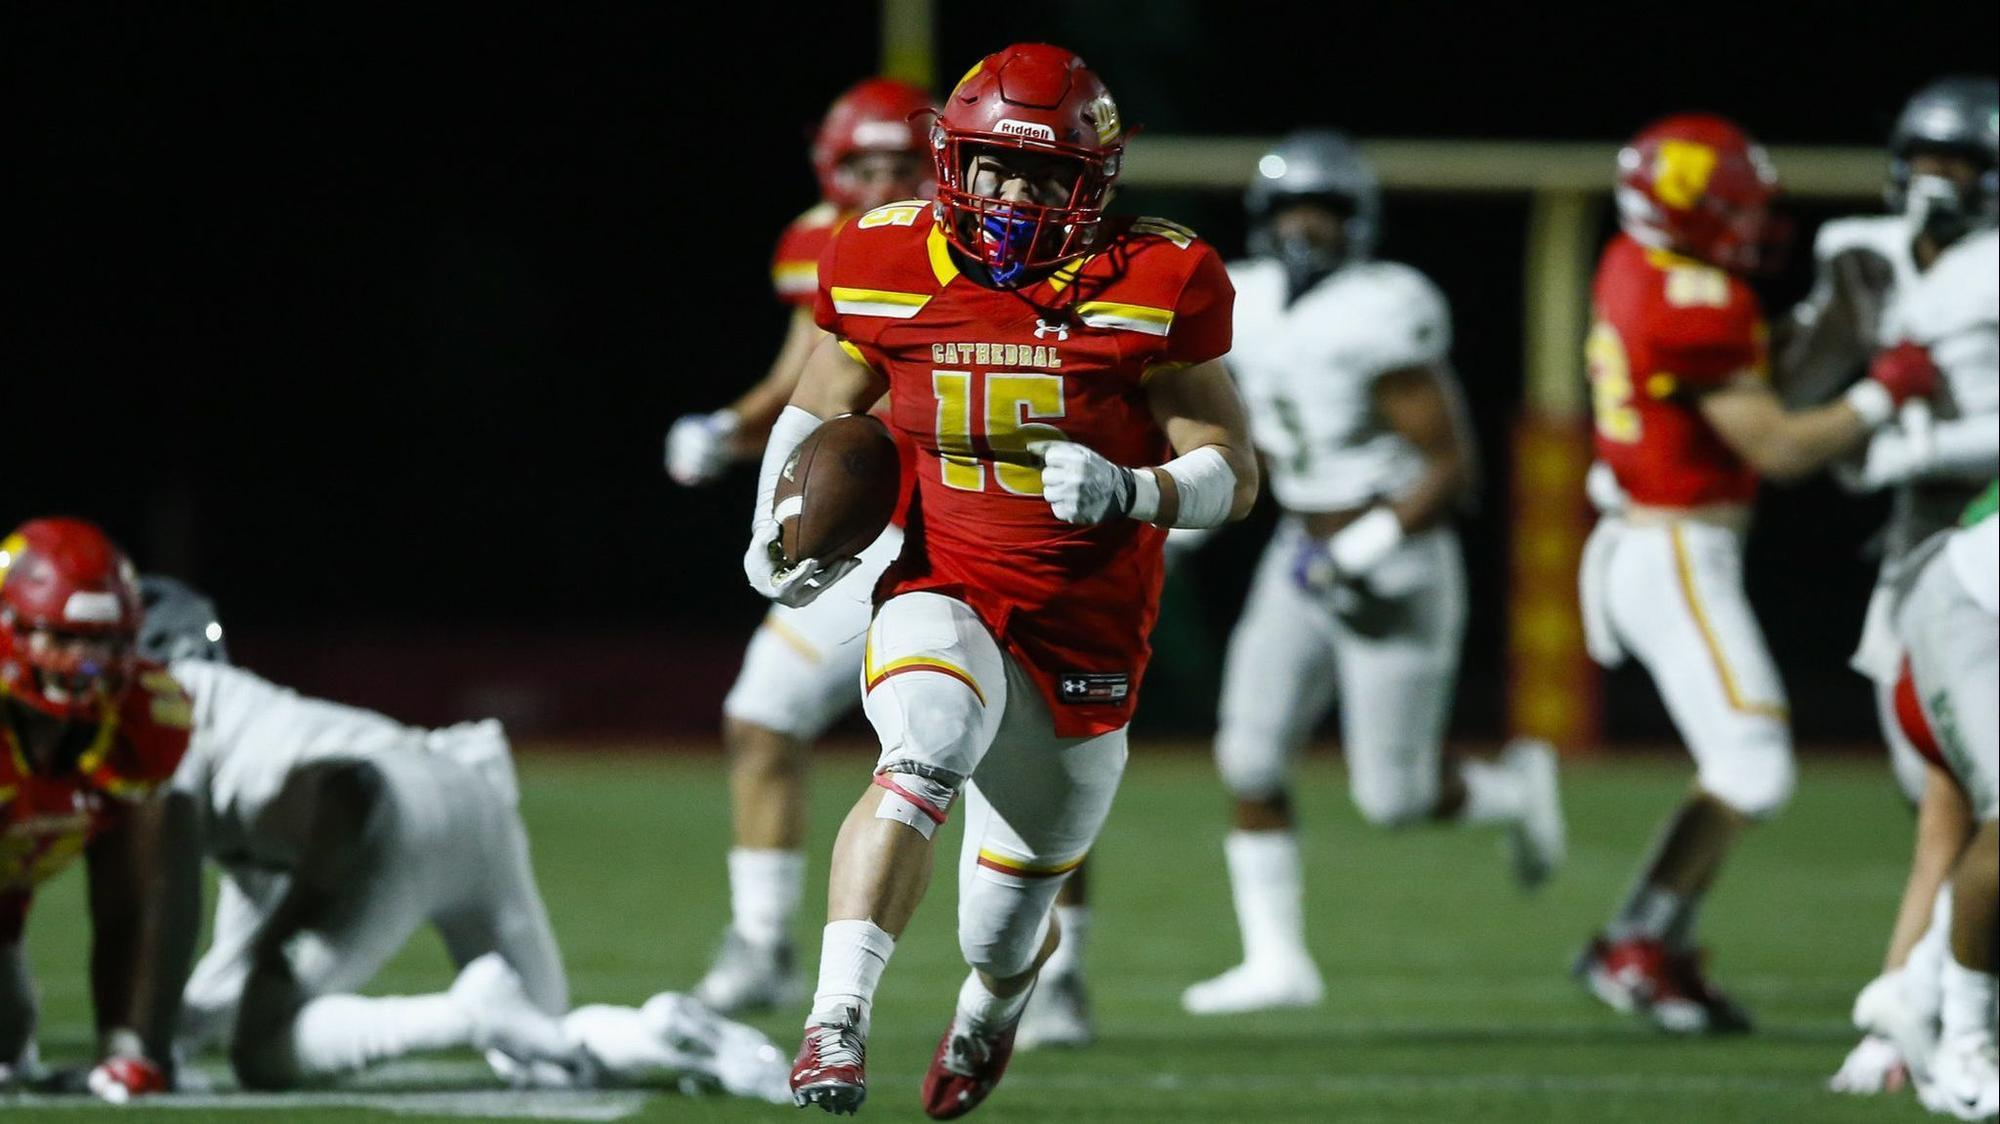 Narbonne loses to Cathedral Catholic on late field goal